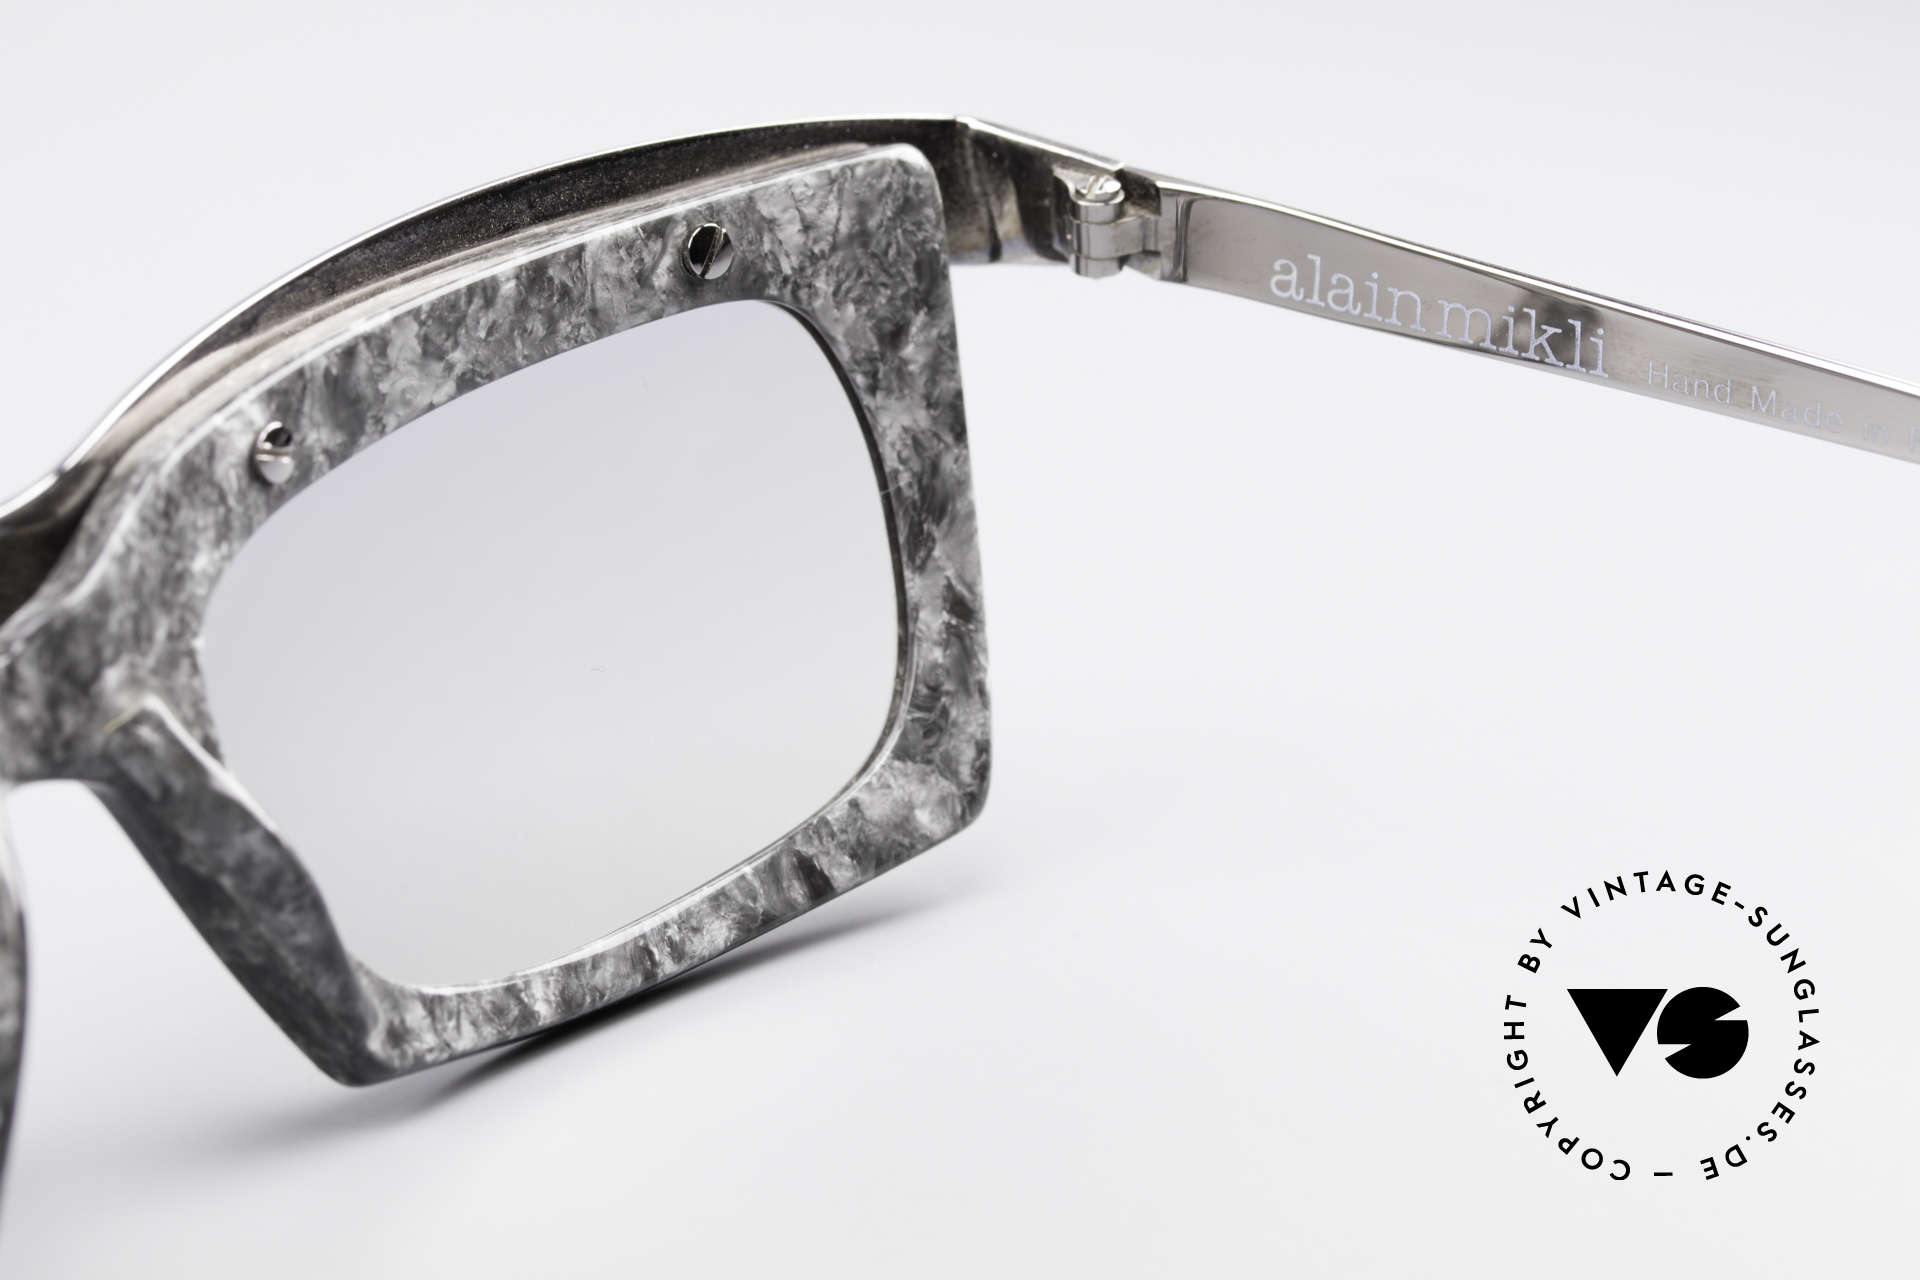 Alain Mikli 611 / 021 Spectacular 80's Sunglasses, lenses could be replaced with prescriptions, if needed, Made for Men and Women